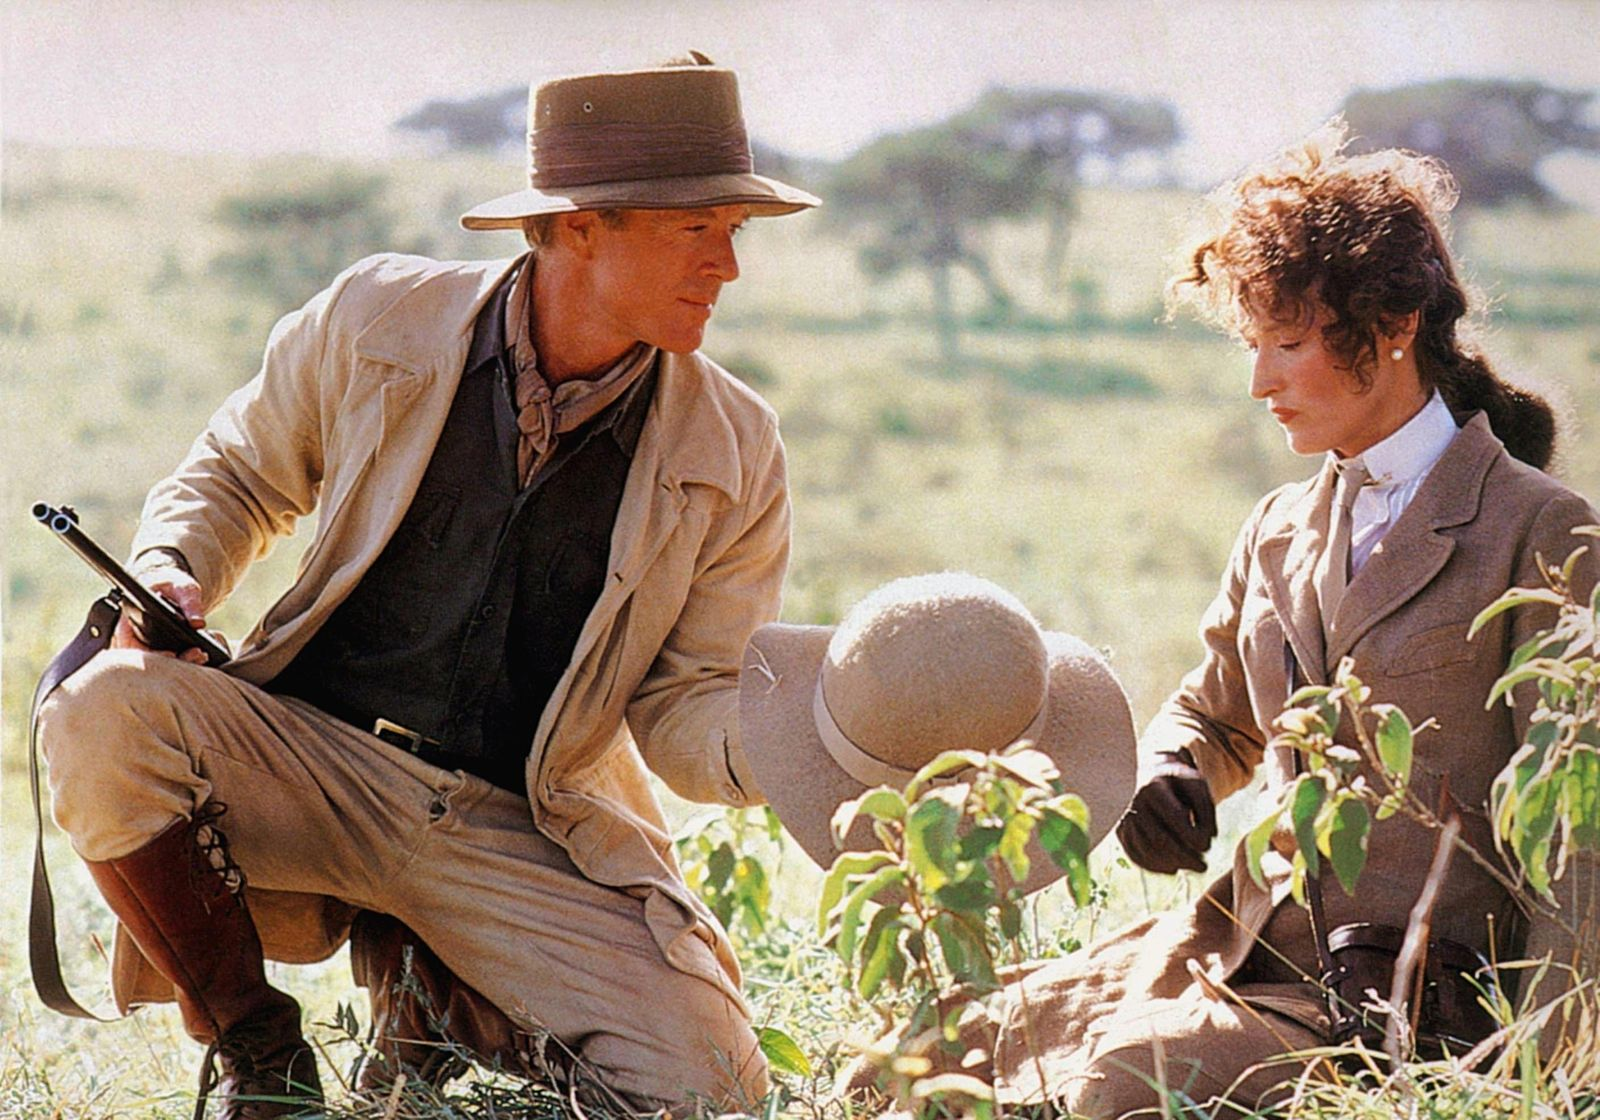 Jenseits von Afrika / Out of Africa